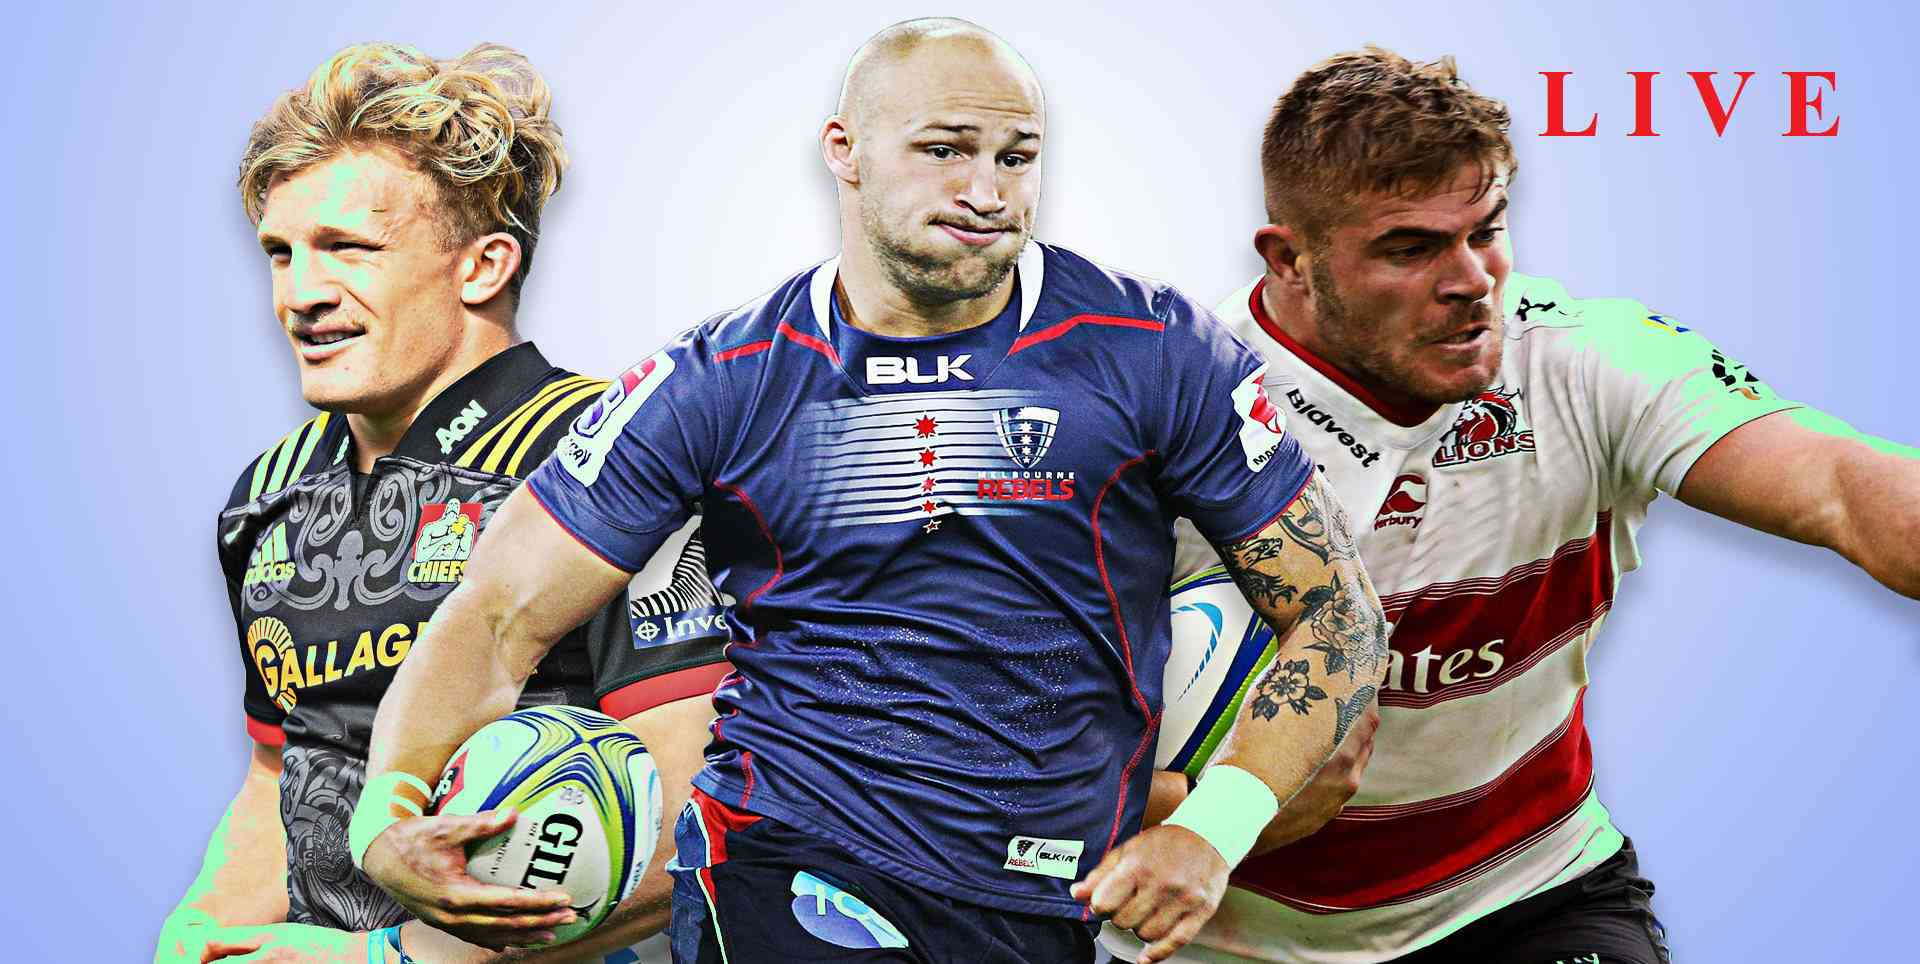 cardiff-blues-vs-sale-sharks-rugby-live